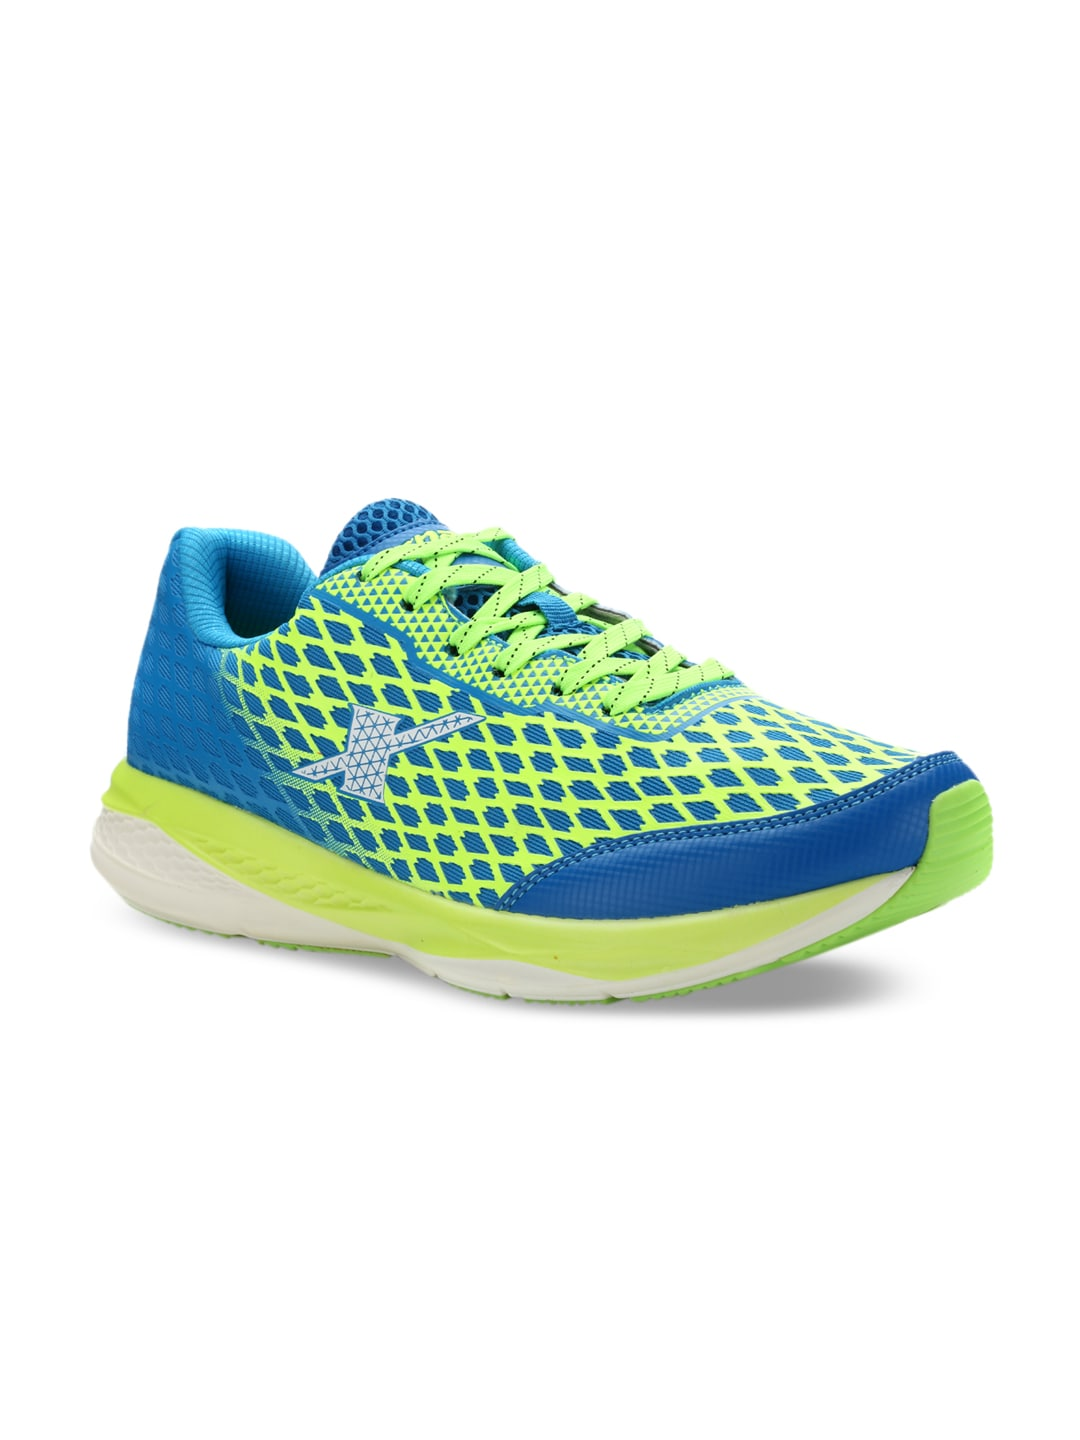 bfbca39339fc7 Sparx Shoes - Buy Sparx Shoes for Men Online in India